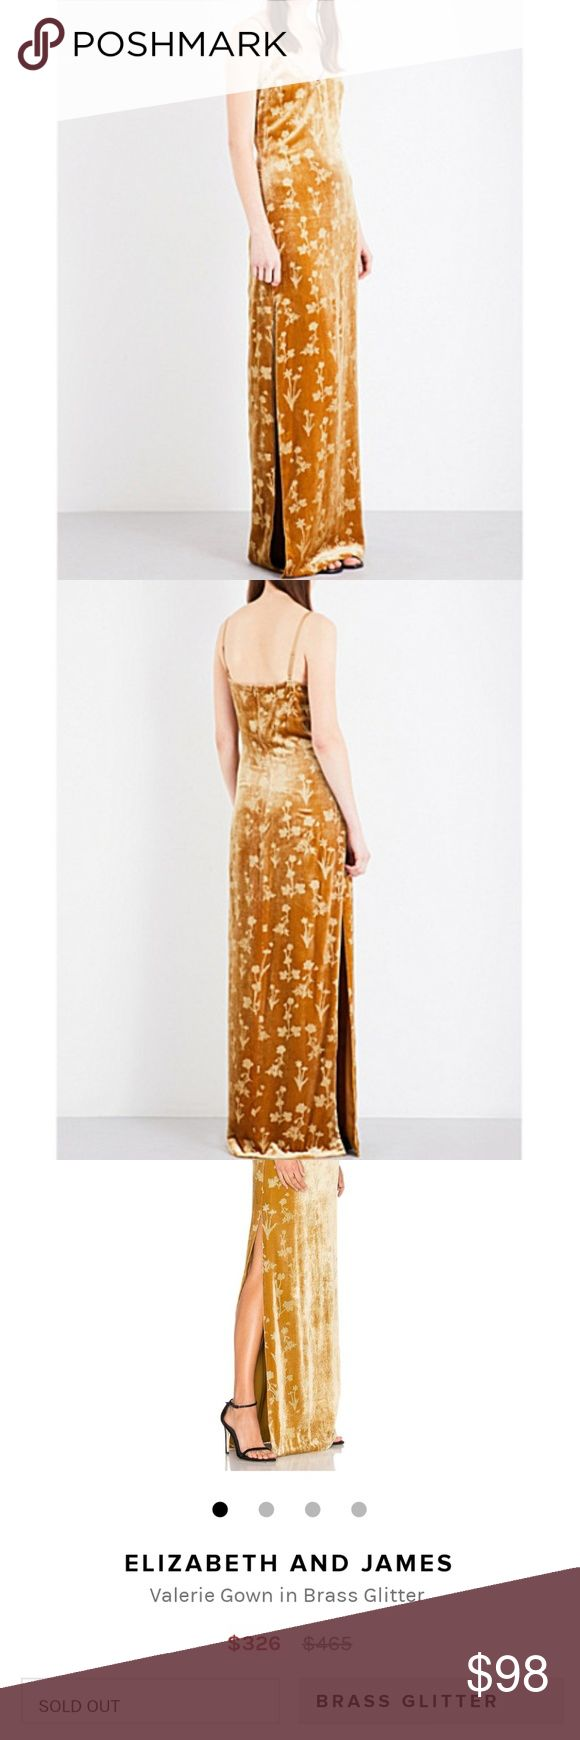 NWT Elizabeth And James Valerie Maxi Gown Dress NWT Elizabeth And James Valerie Gown Maxi Dress in Brass Glitter. Fabric is velvety and has a slight glittery quality to it. Purchased at a discount retailer for a great deal and passing the savings on to you ♥️ Size 4 Elizabeth and James Dresses Maxi